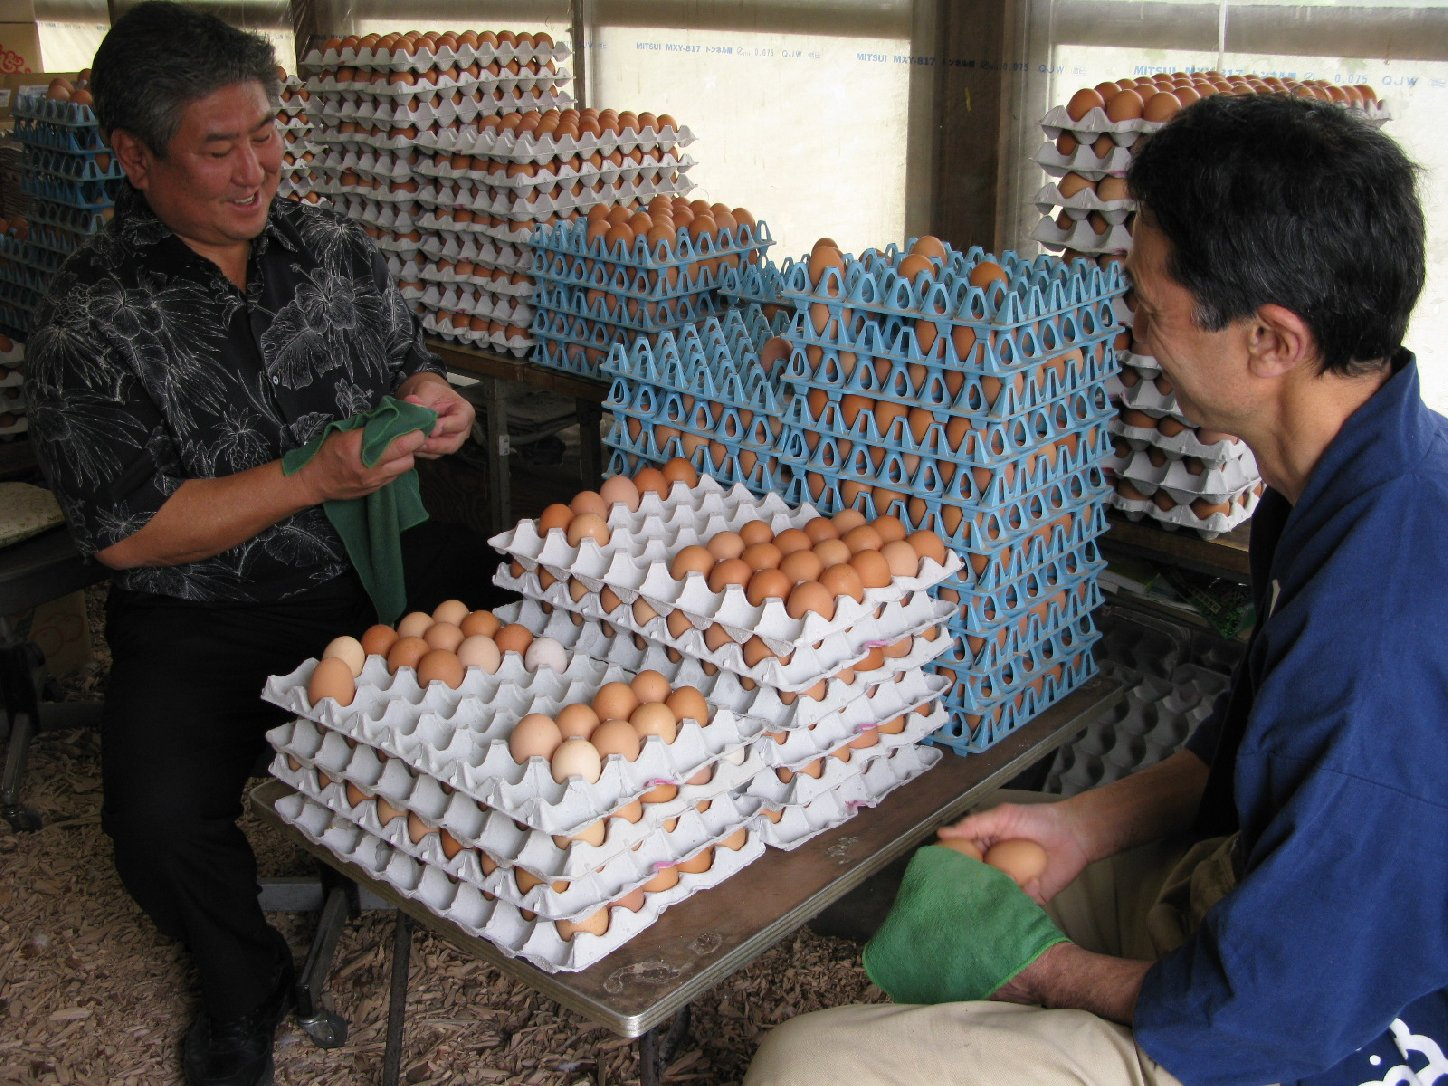 Famed Hawaii chef Alan Wong checks out some of Tadaaki Hachisu's eggs in Japan. (Photo by Dan Nakasone)